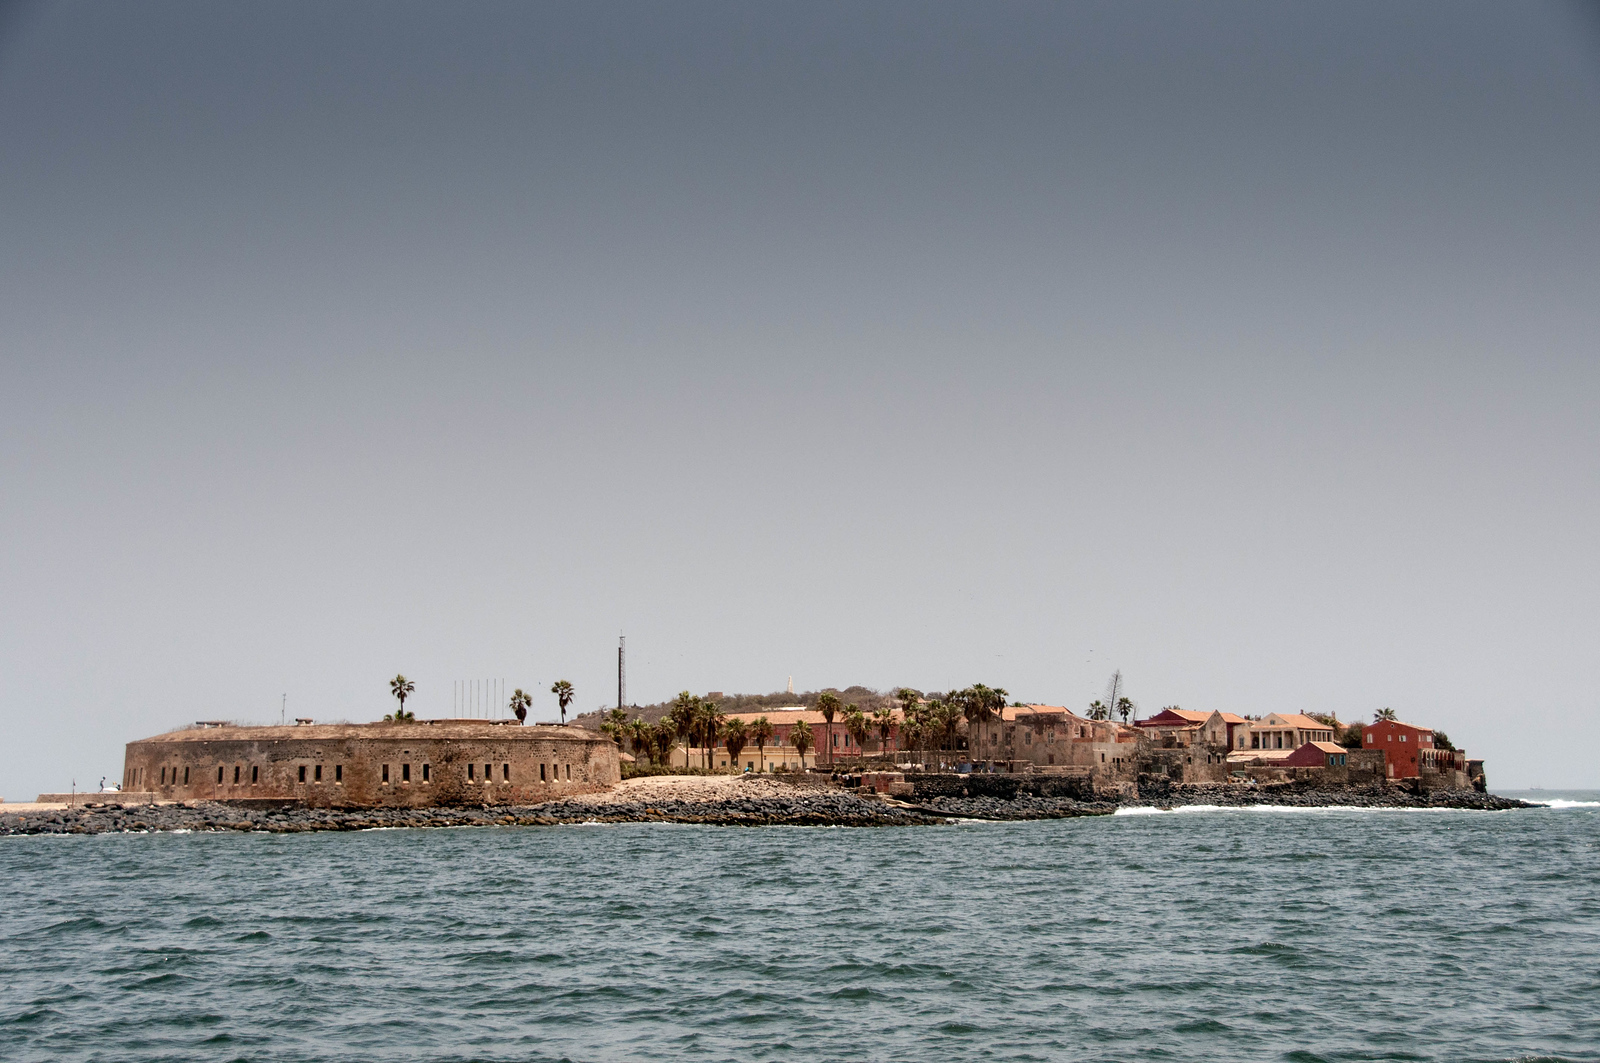 Island of Gorée UNESCO World Heritage Site, Senegal